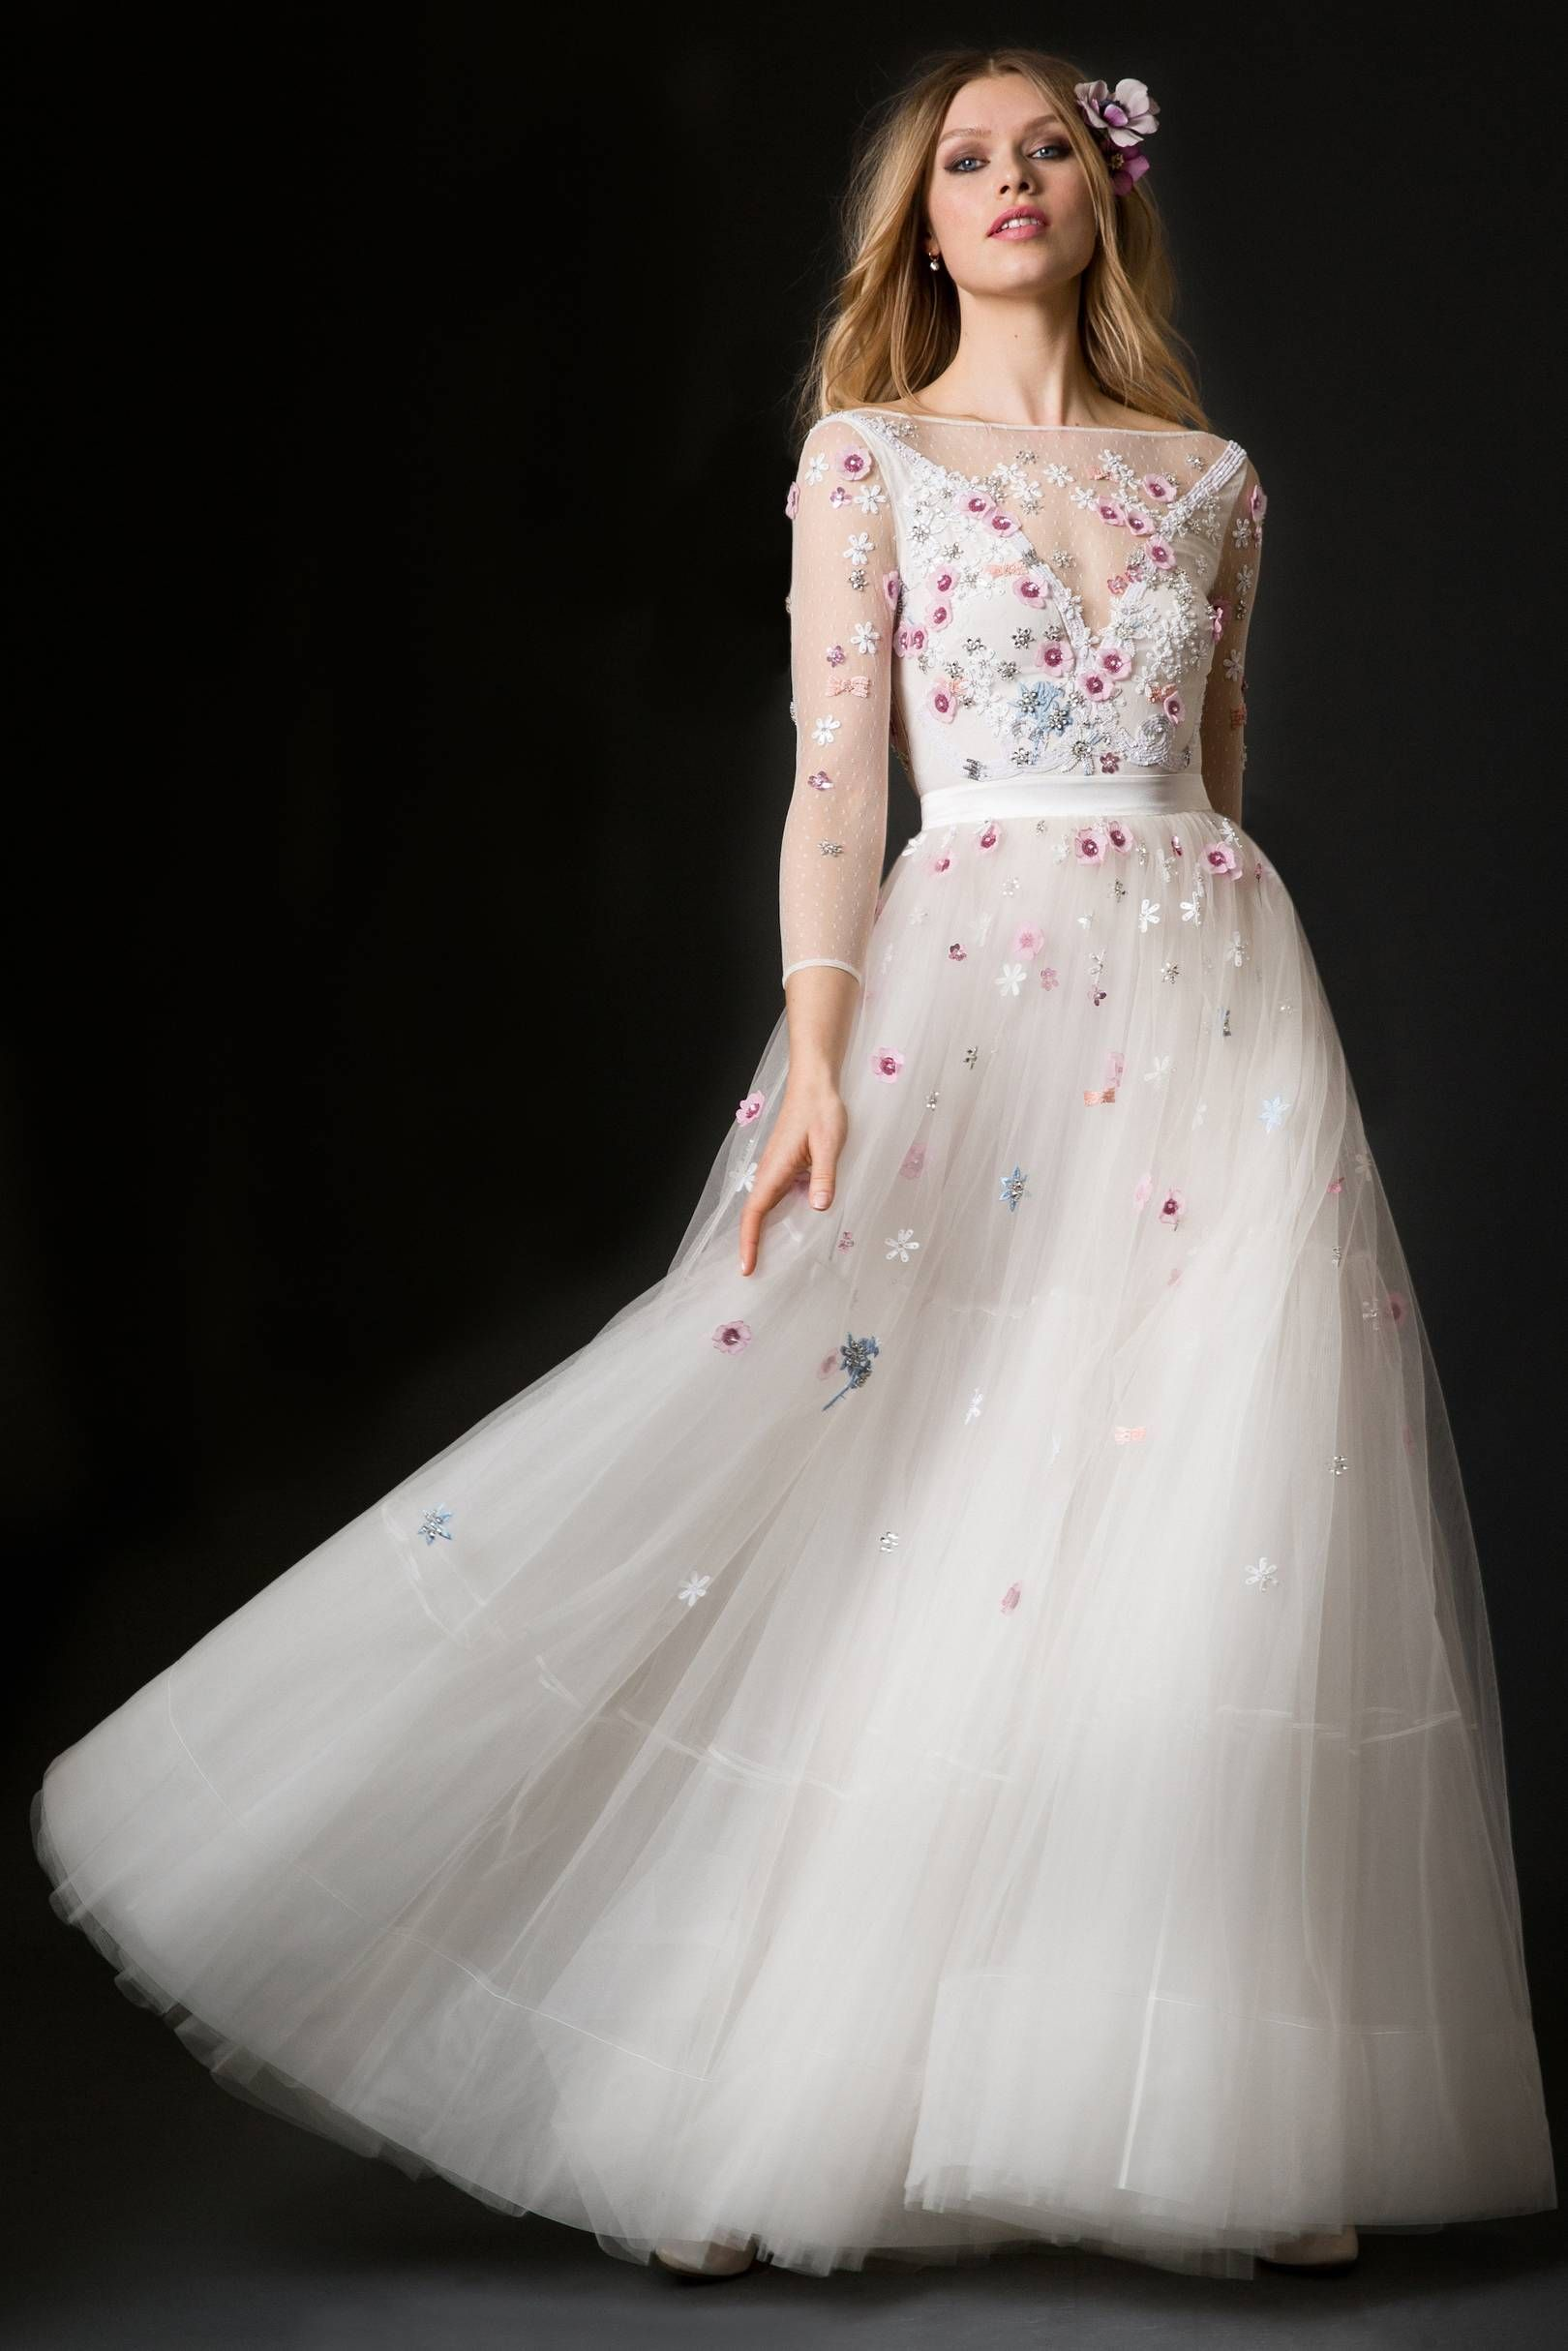 28 Floral Wedding Dresses Perfect for a Spring Wedding